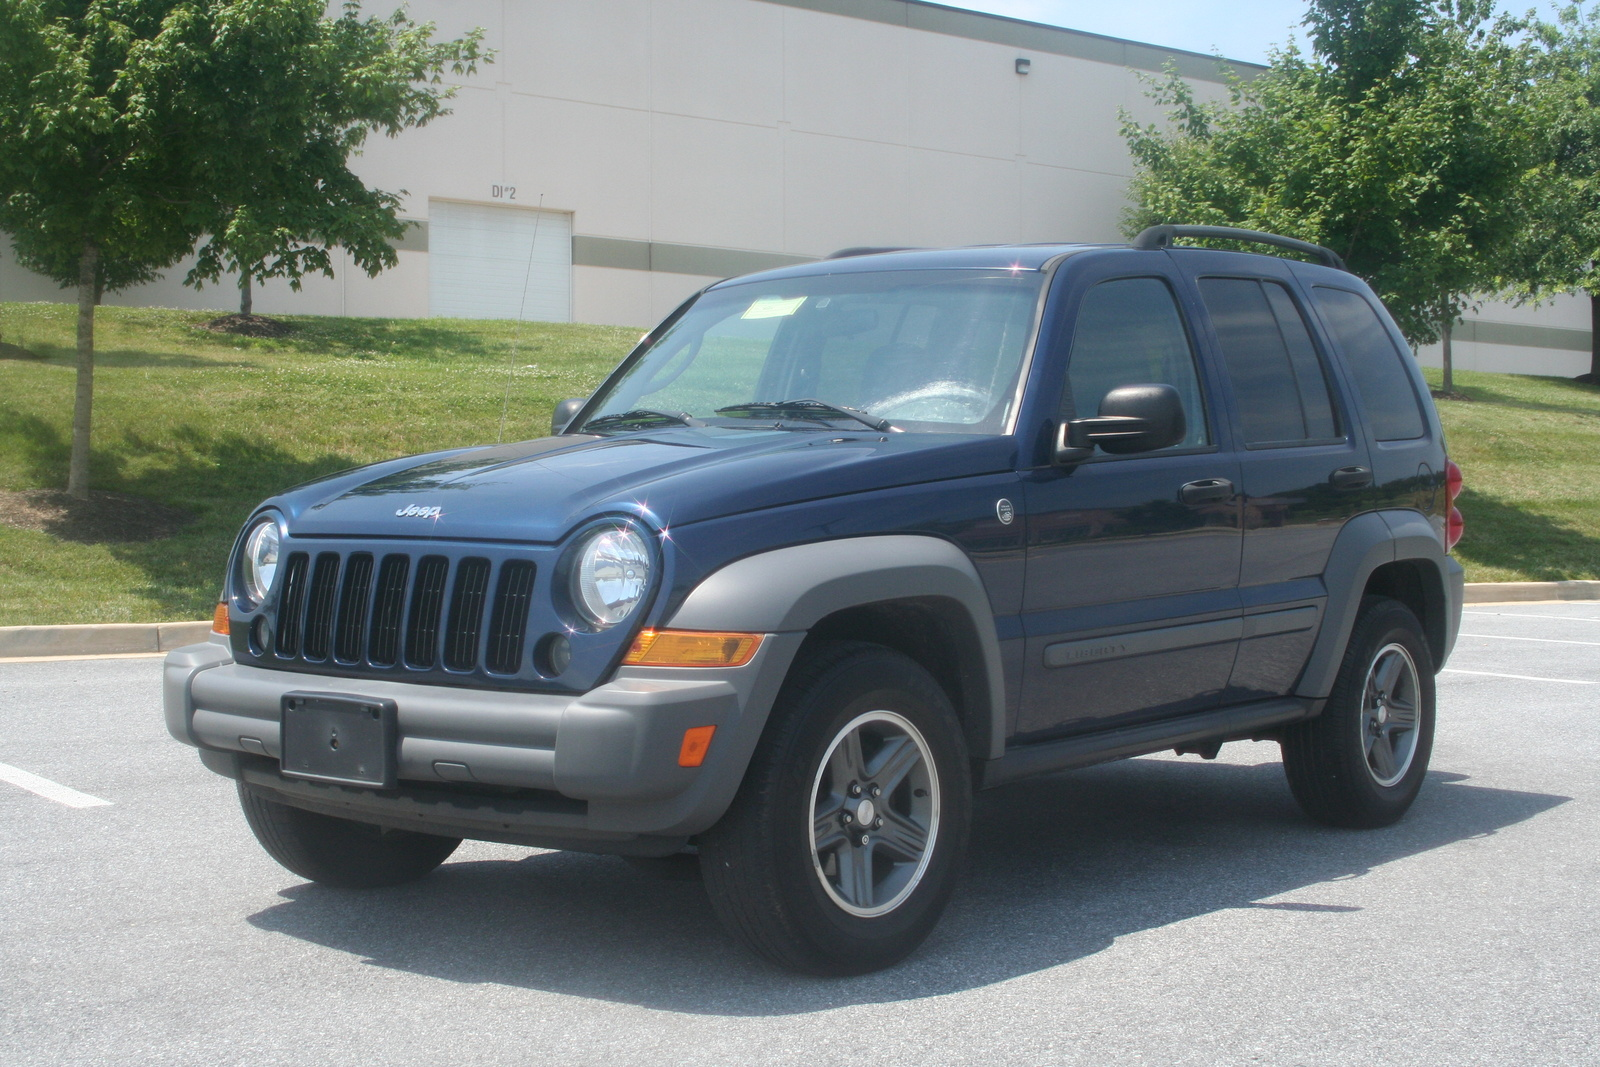 2012 jeep liberty consumer reviews jeep liberty 2013 reviews read. Cars Review. Best American Auto & Cars Review